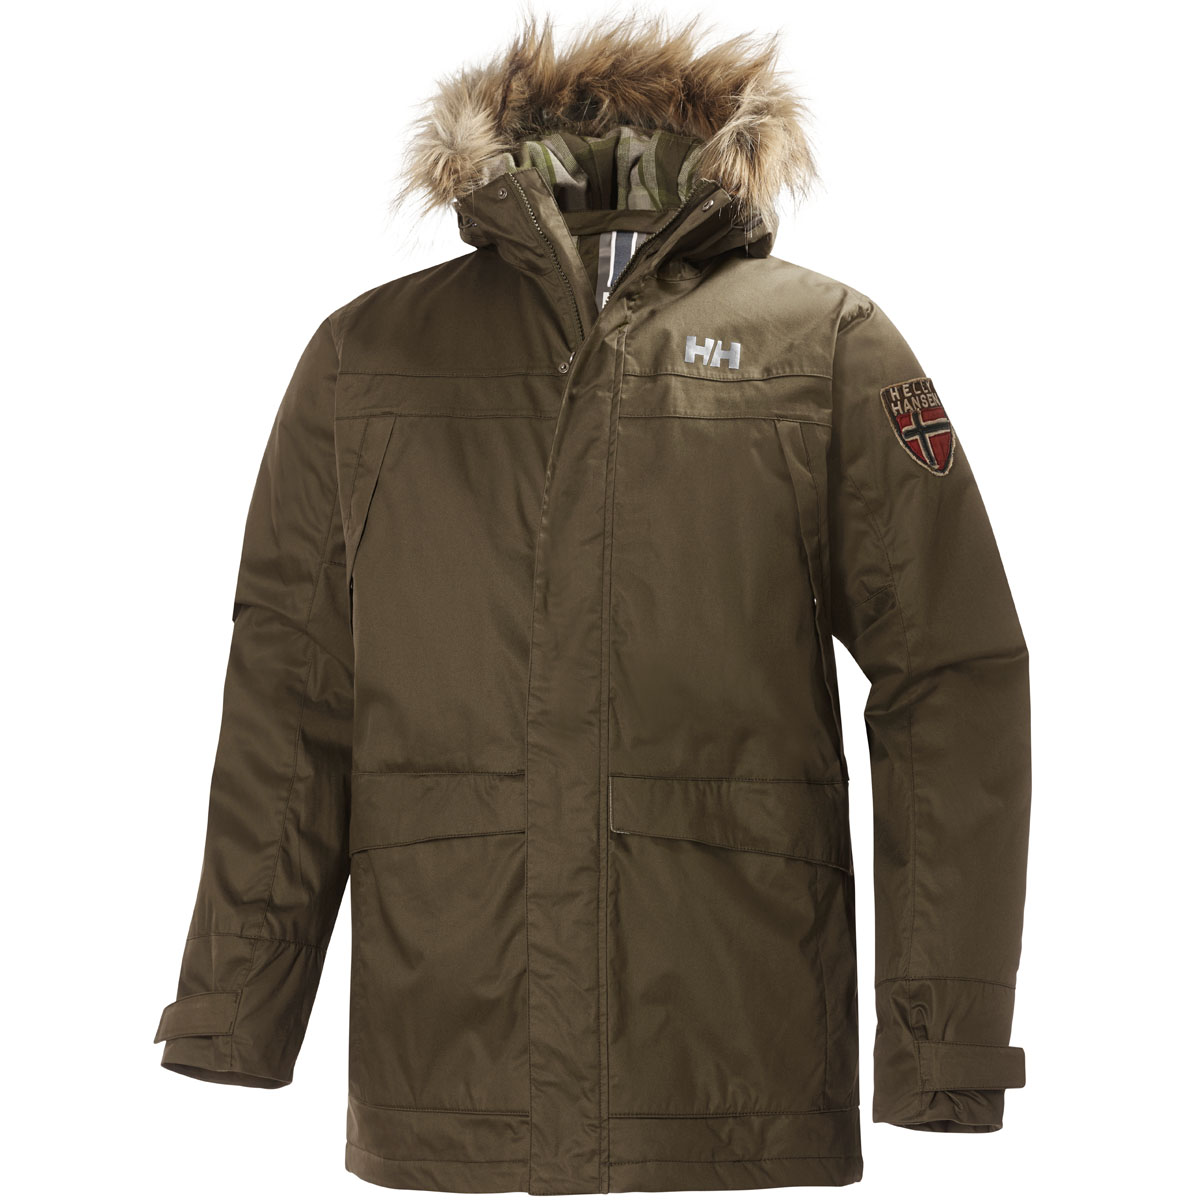 Online shopping from a great selection at Sports & Outdoors Store.